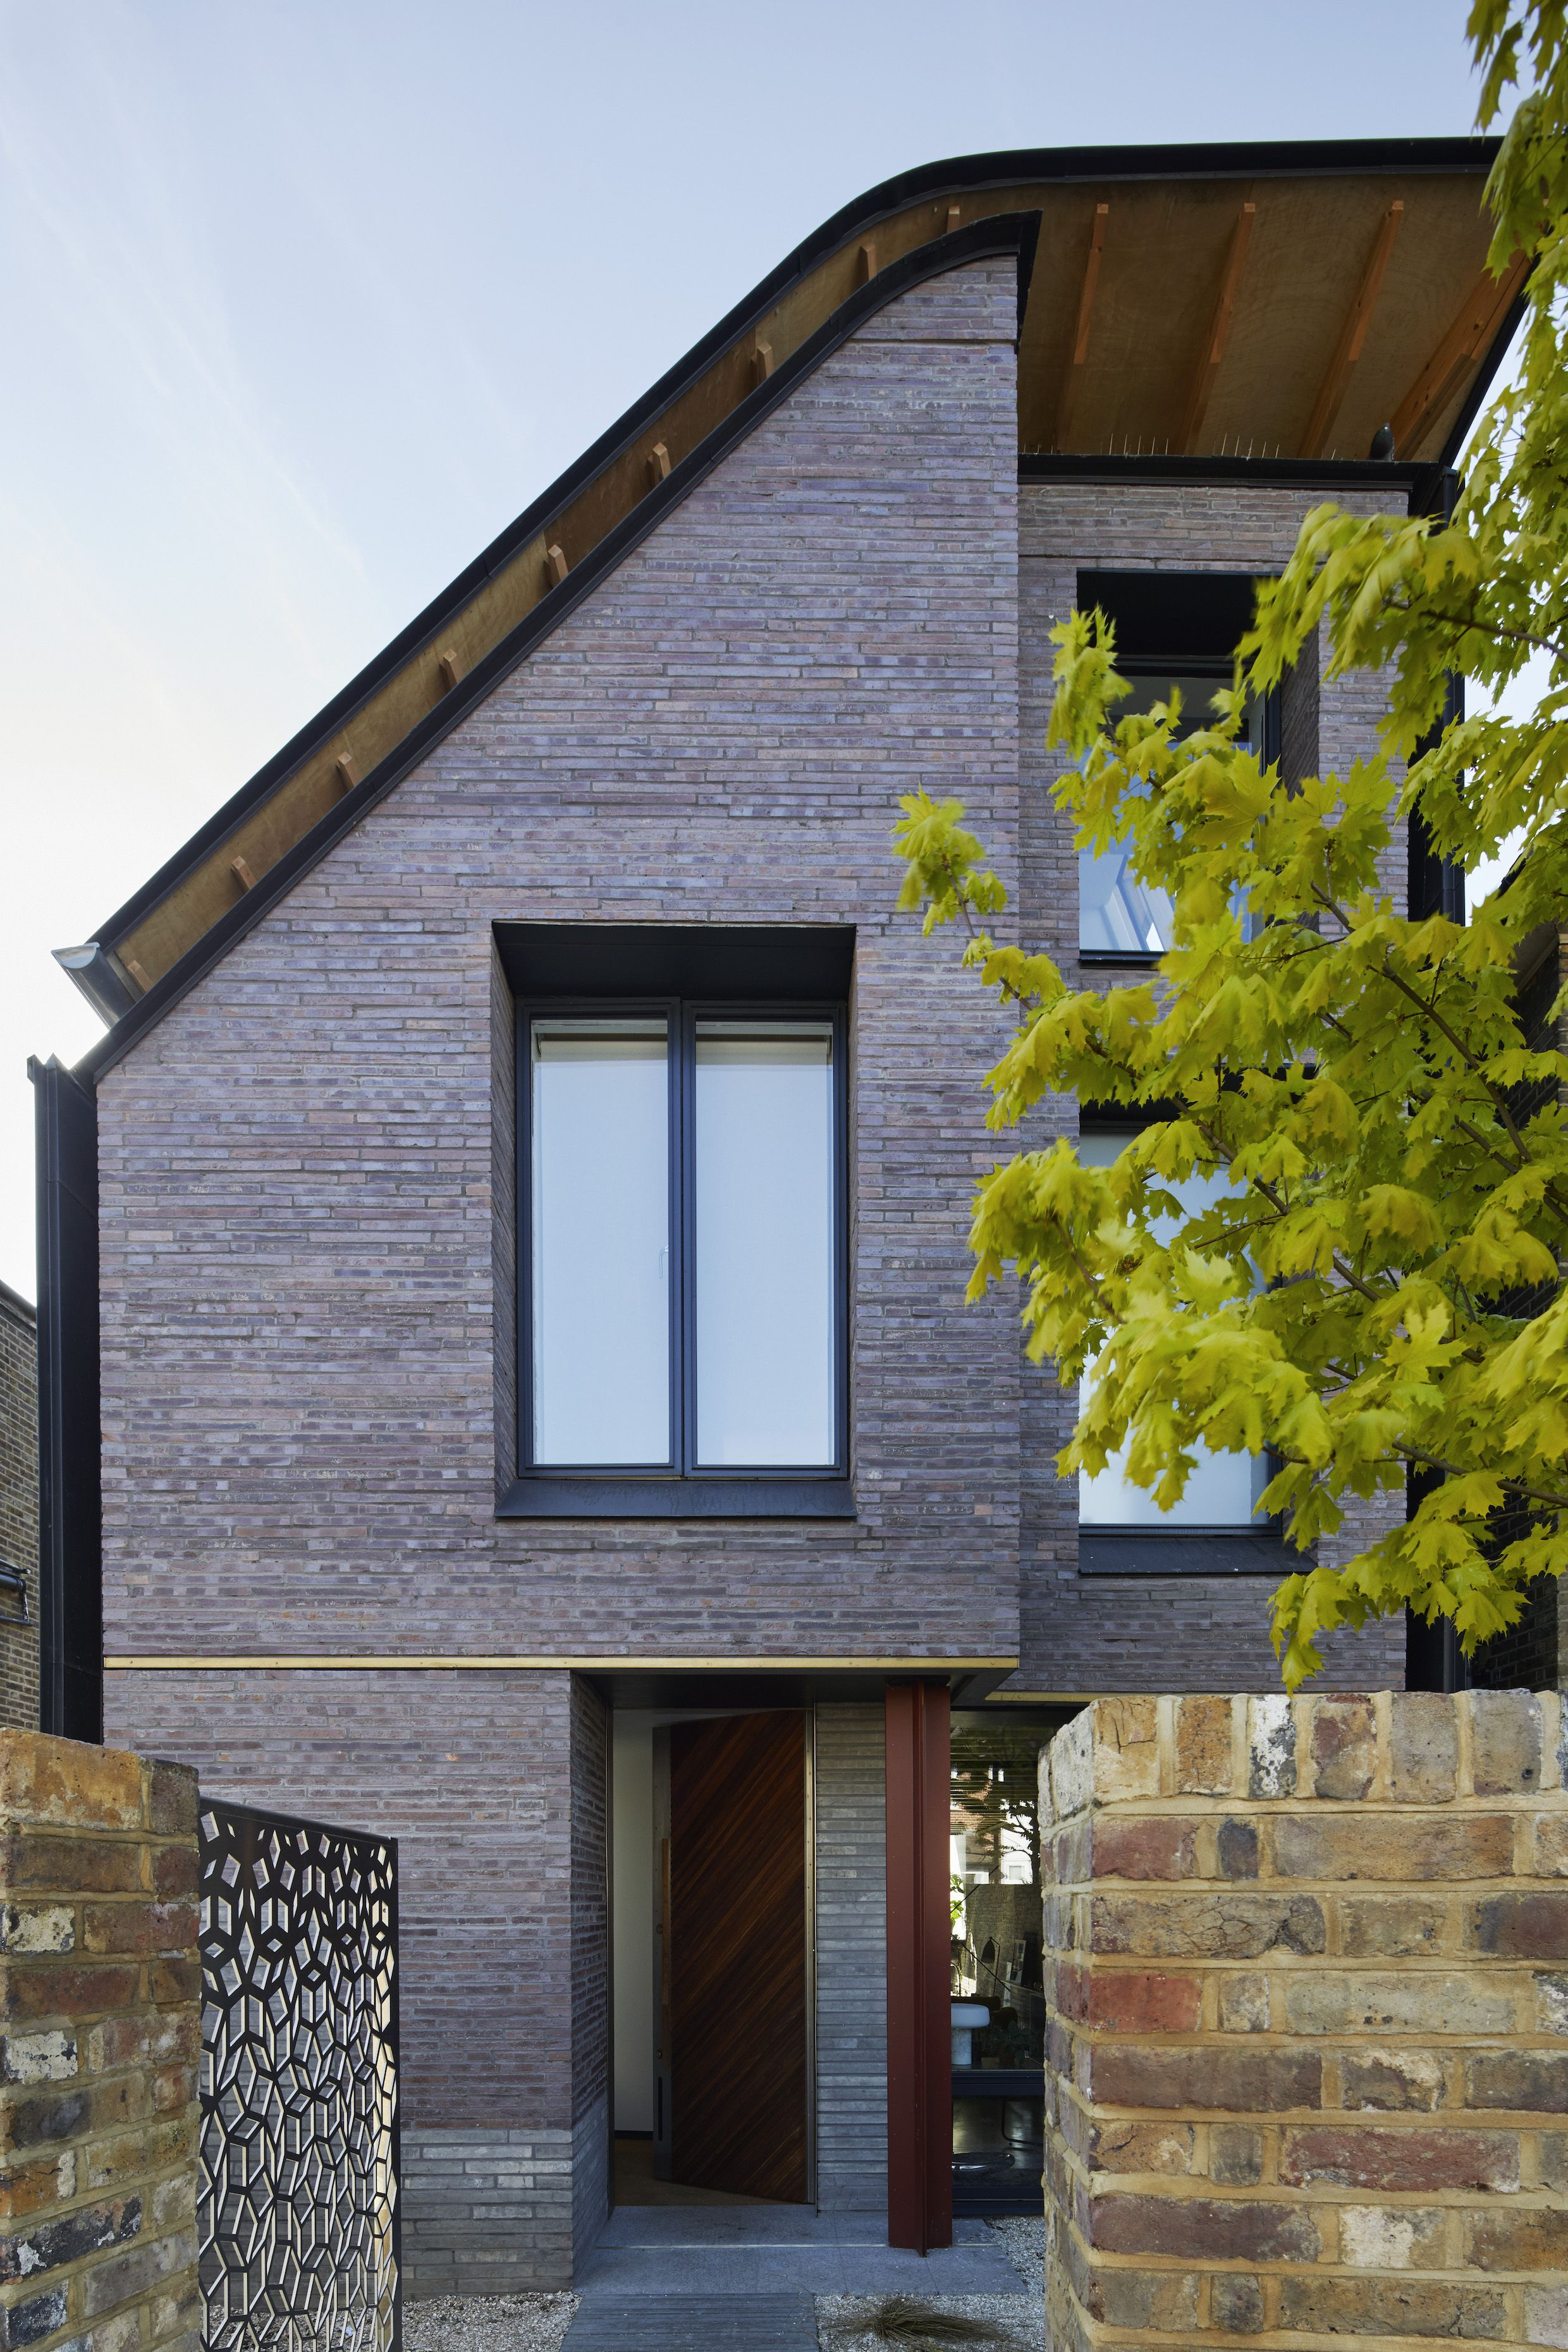 The Makers House by Liddicoat & Goldhill - RIBA House of the Year 2018 longlist